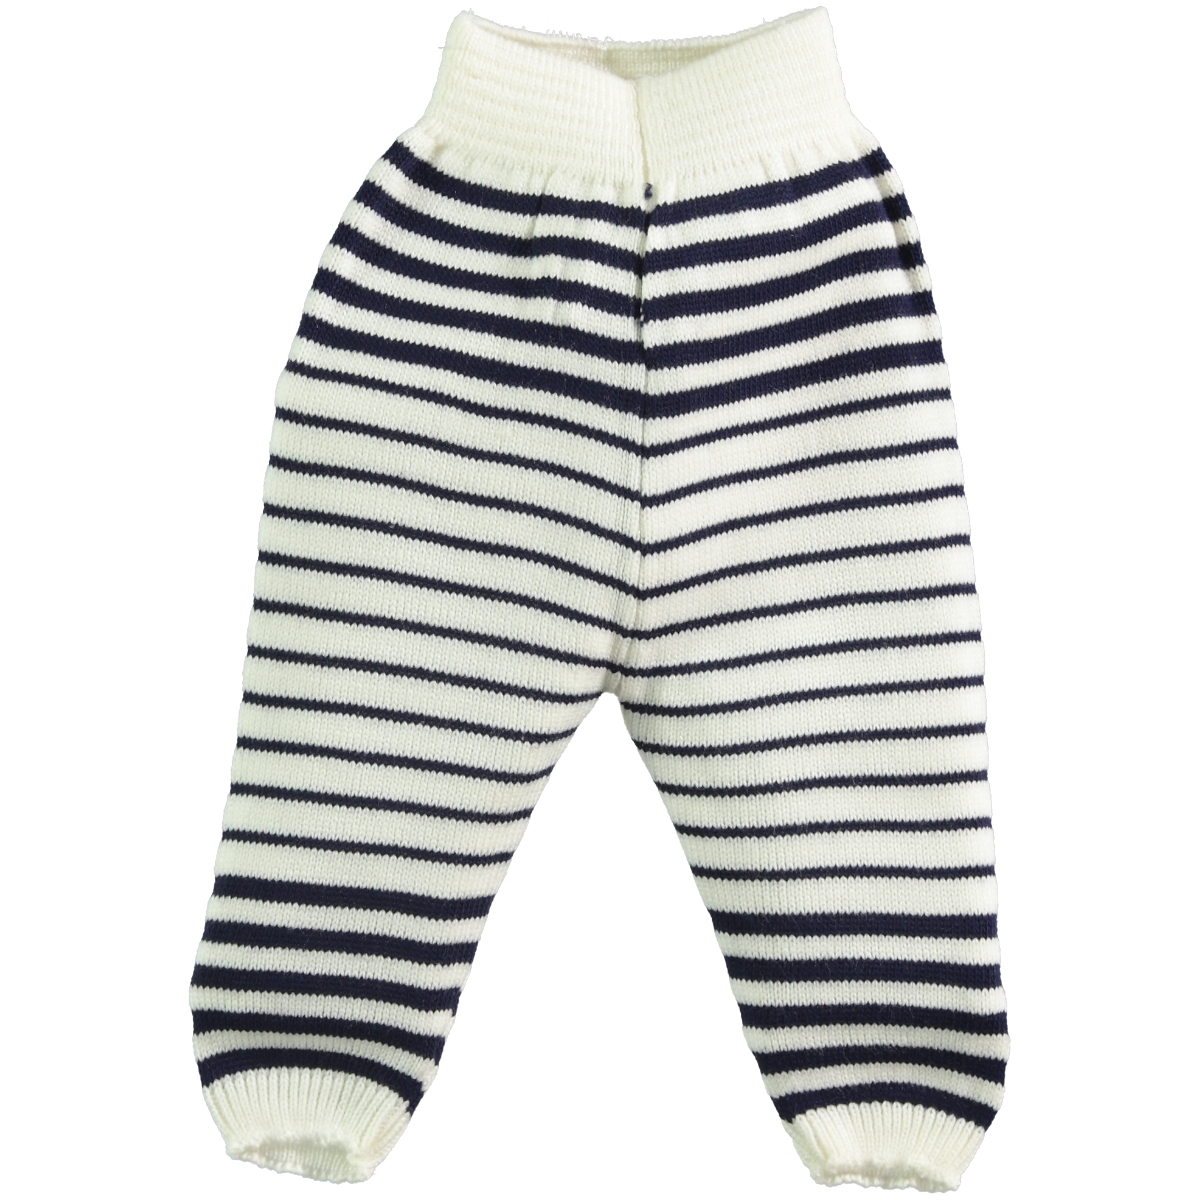 Misket Patiksiz Navy Blue Single Child 3-12 Months Baby